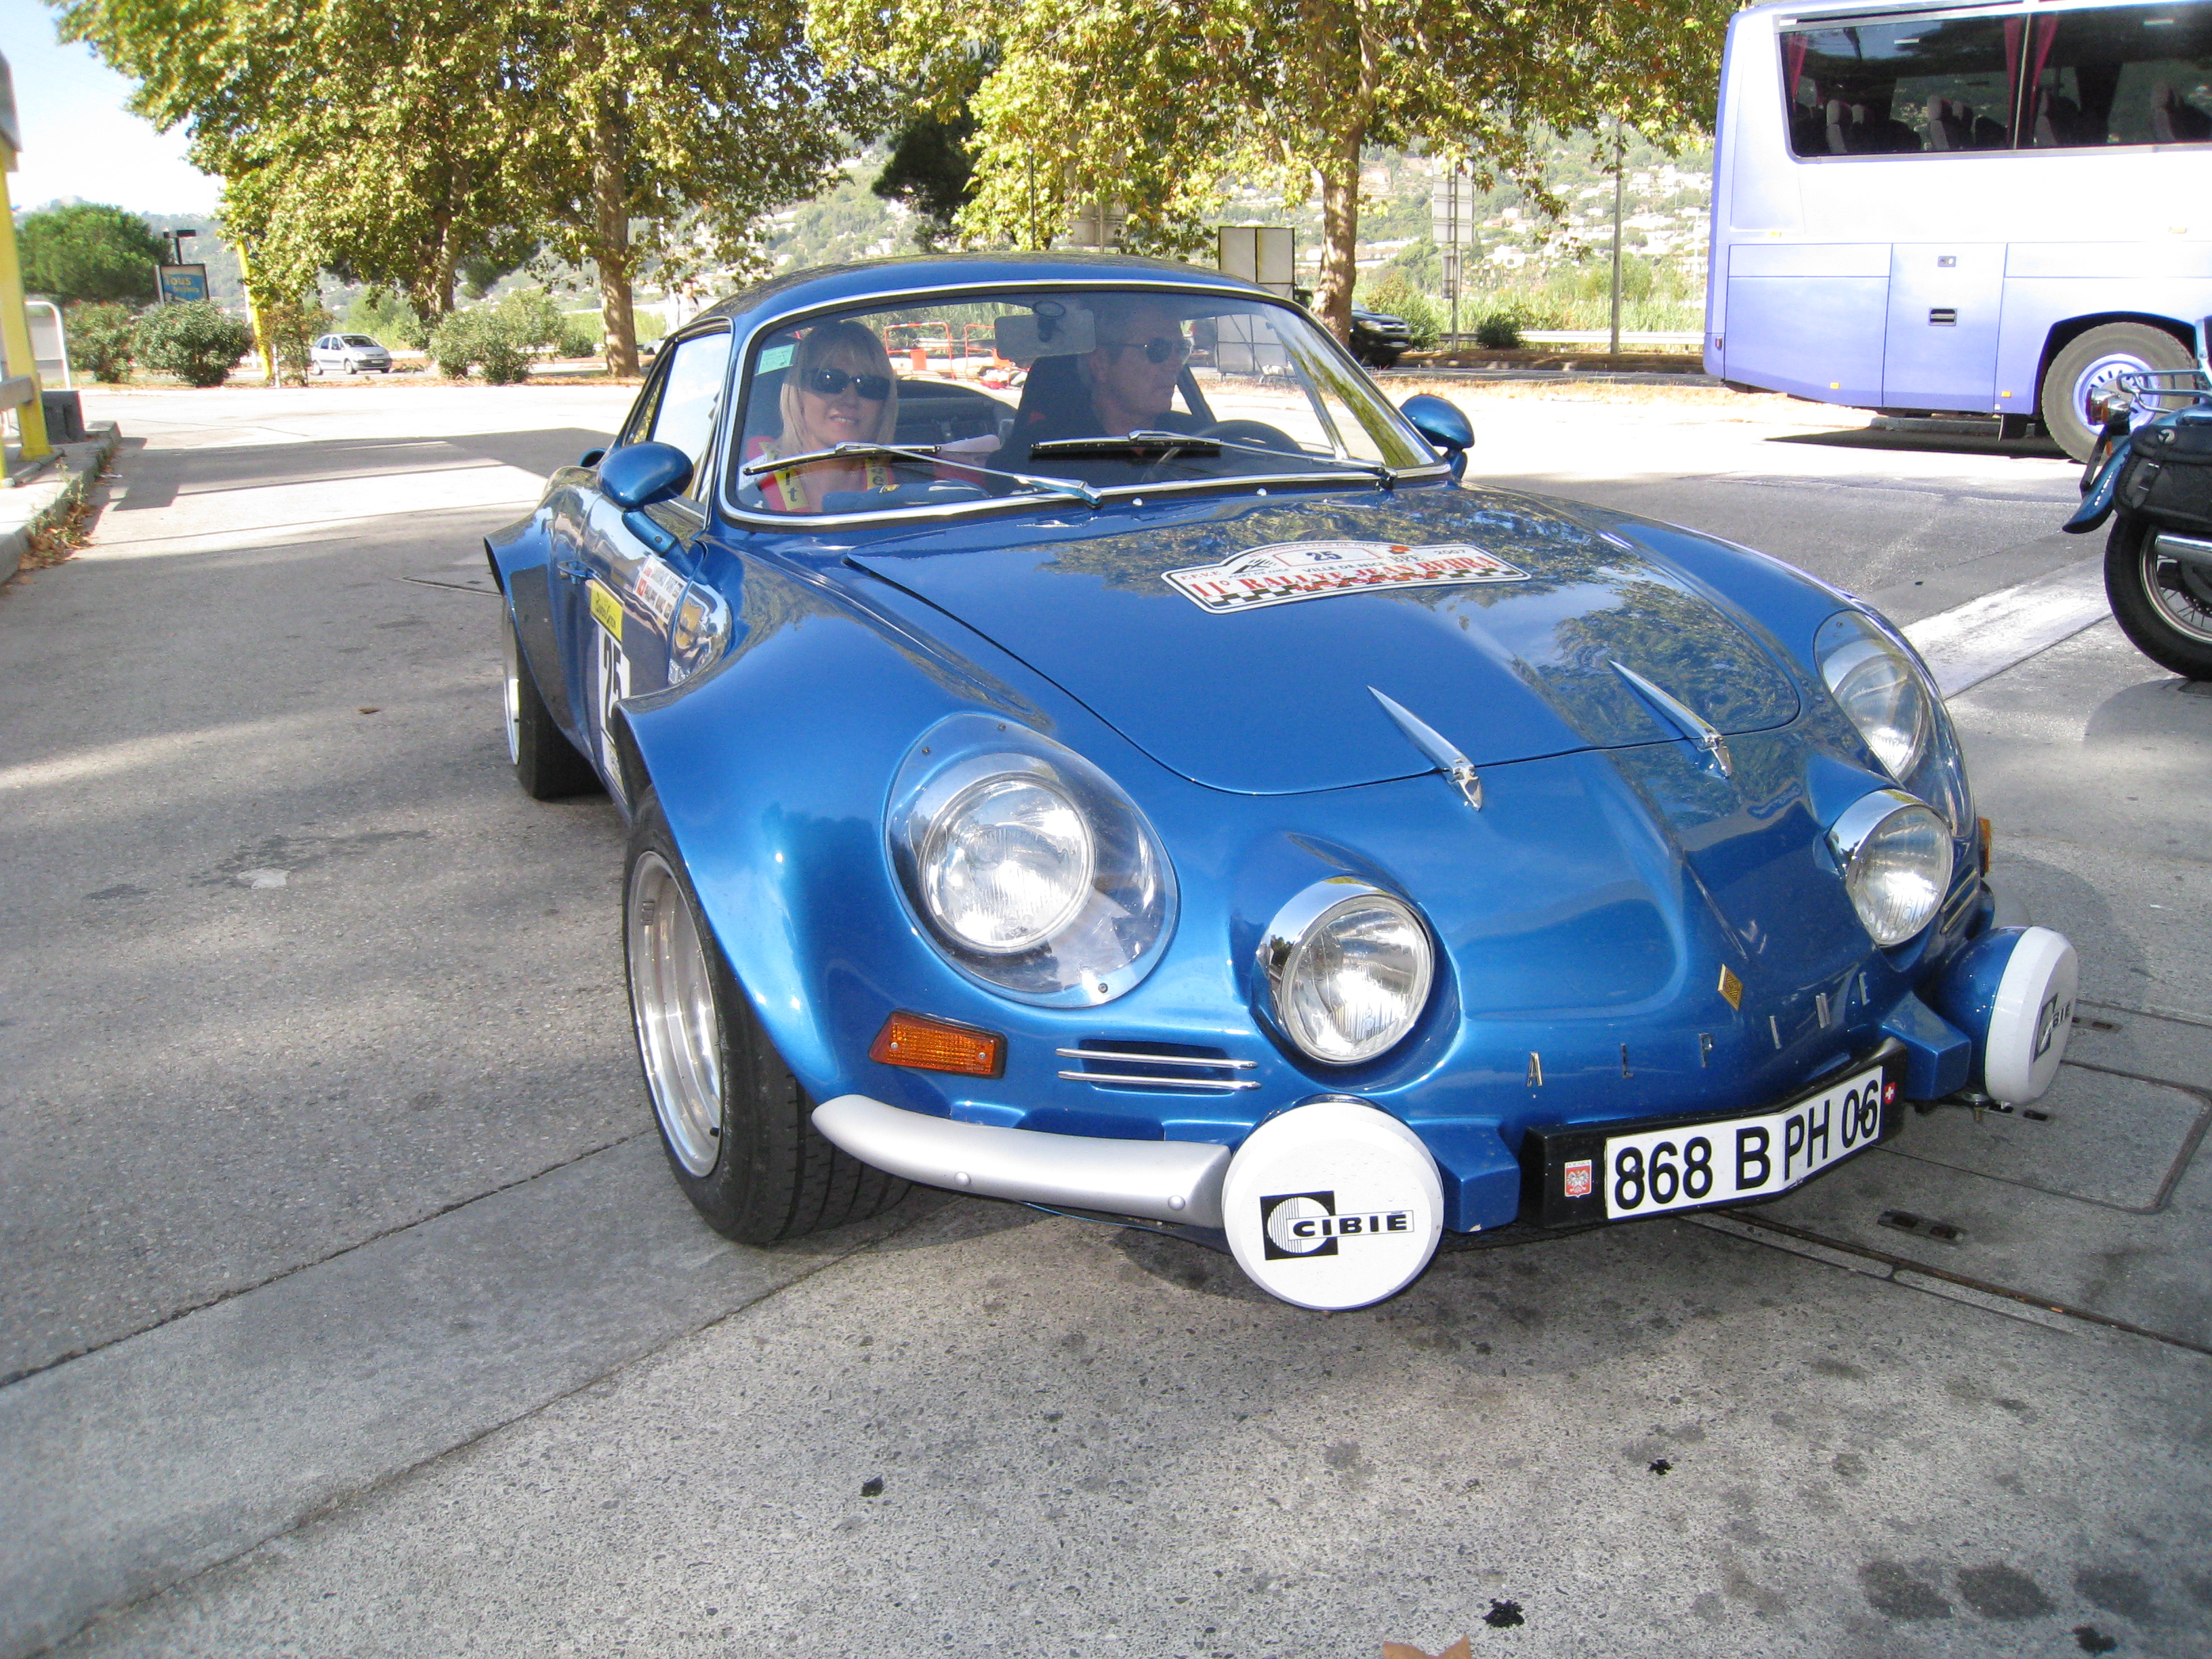 file alpine renault a110 wikimedia commons. Black Bedroom Furniture Sets. Home Design Ideas